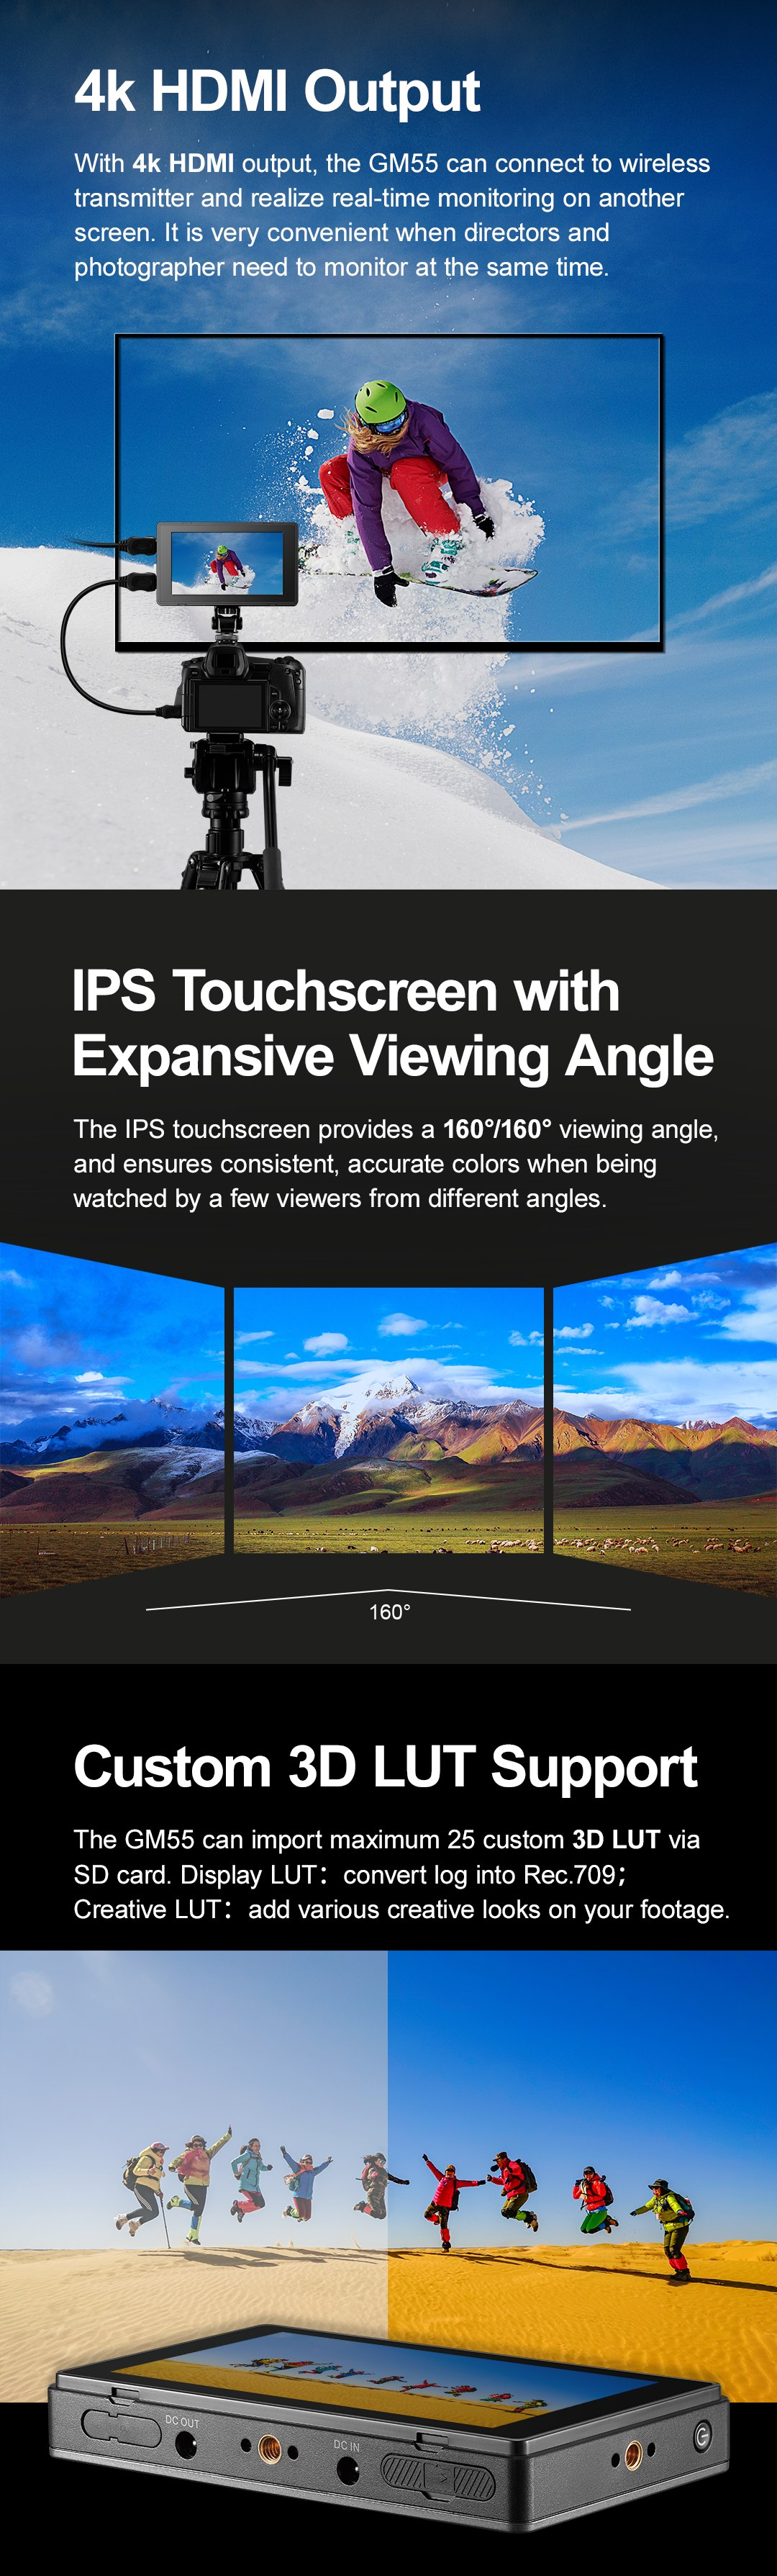 4K HDMI Output IPS Touchscreen with Expansive Viewing Angle Custom 3D LUT support